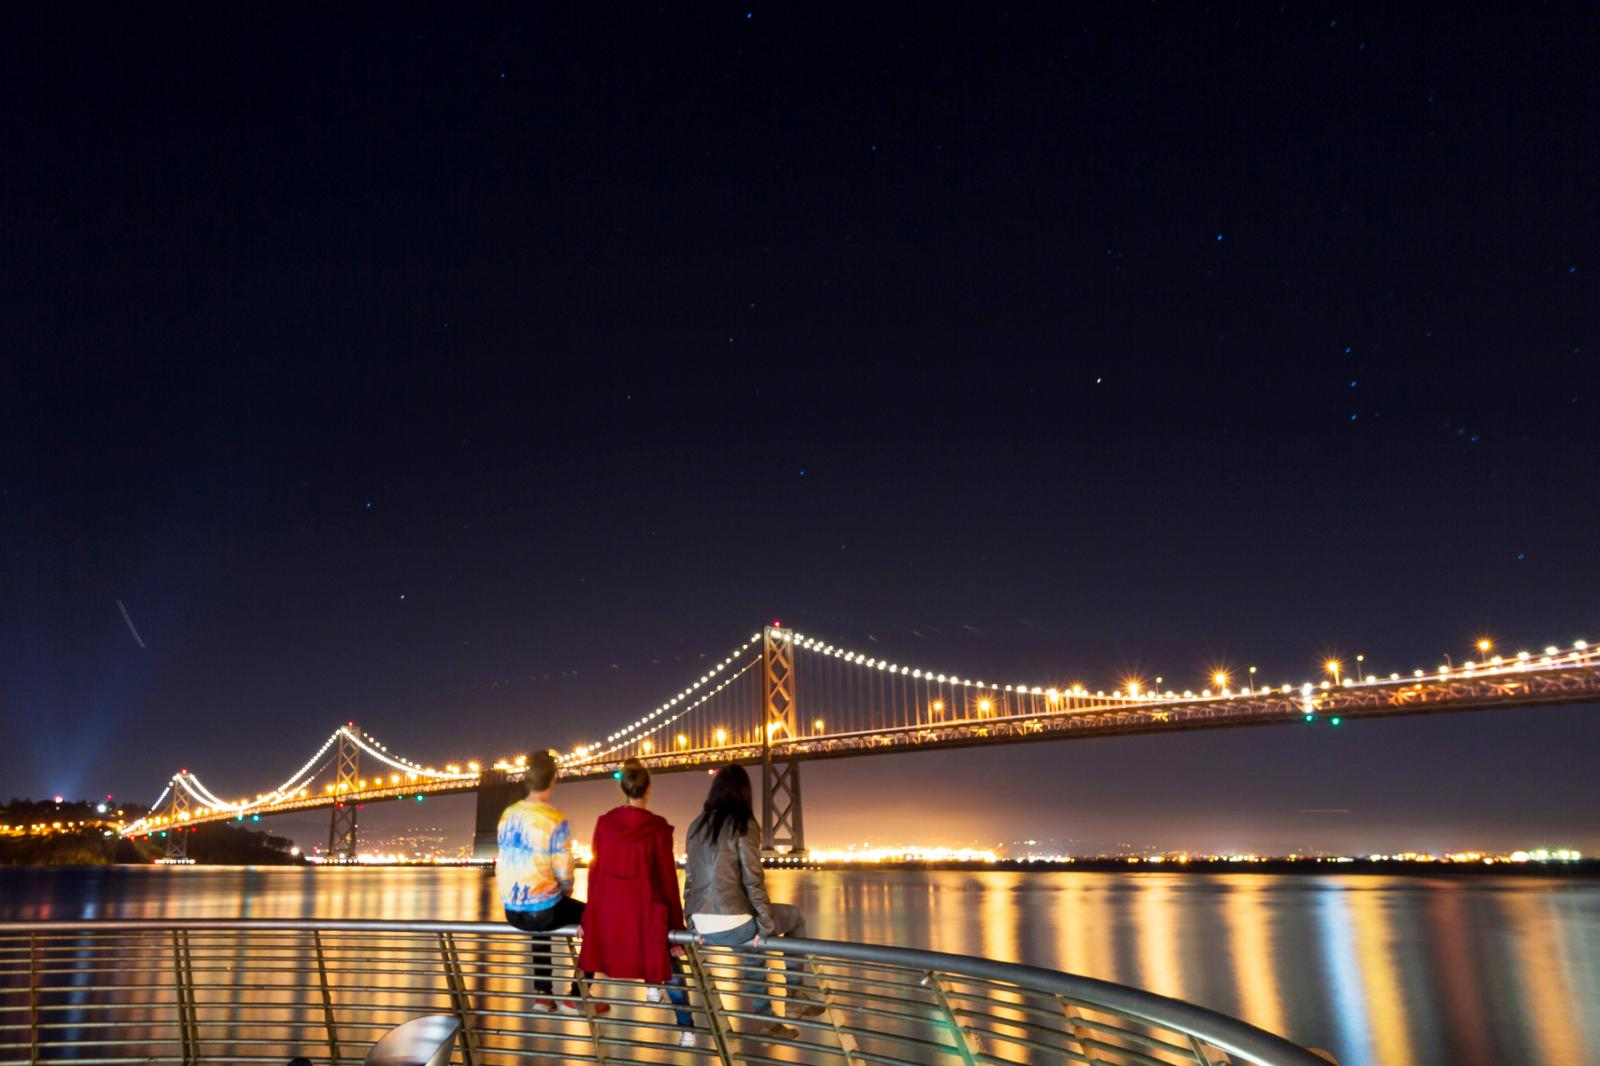 People Sitting On Railing Against Illuminated Bay Bridge At Night